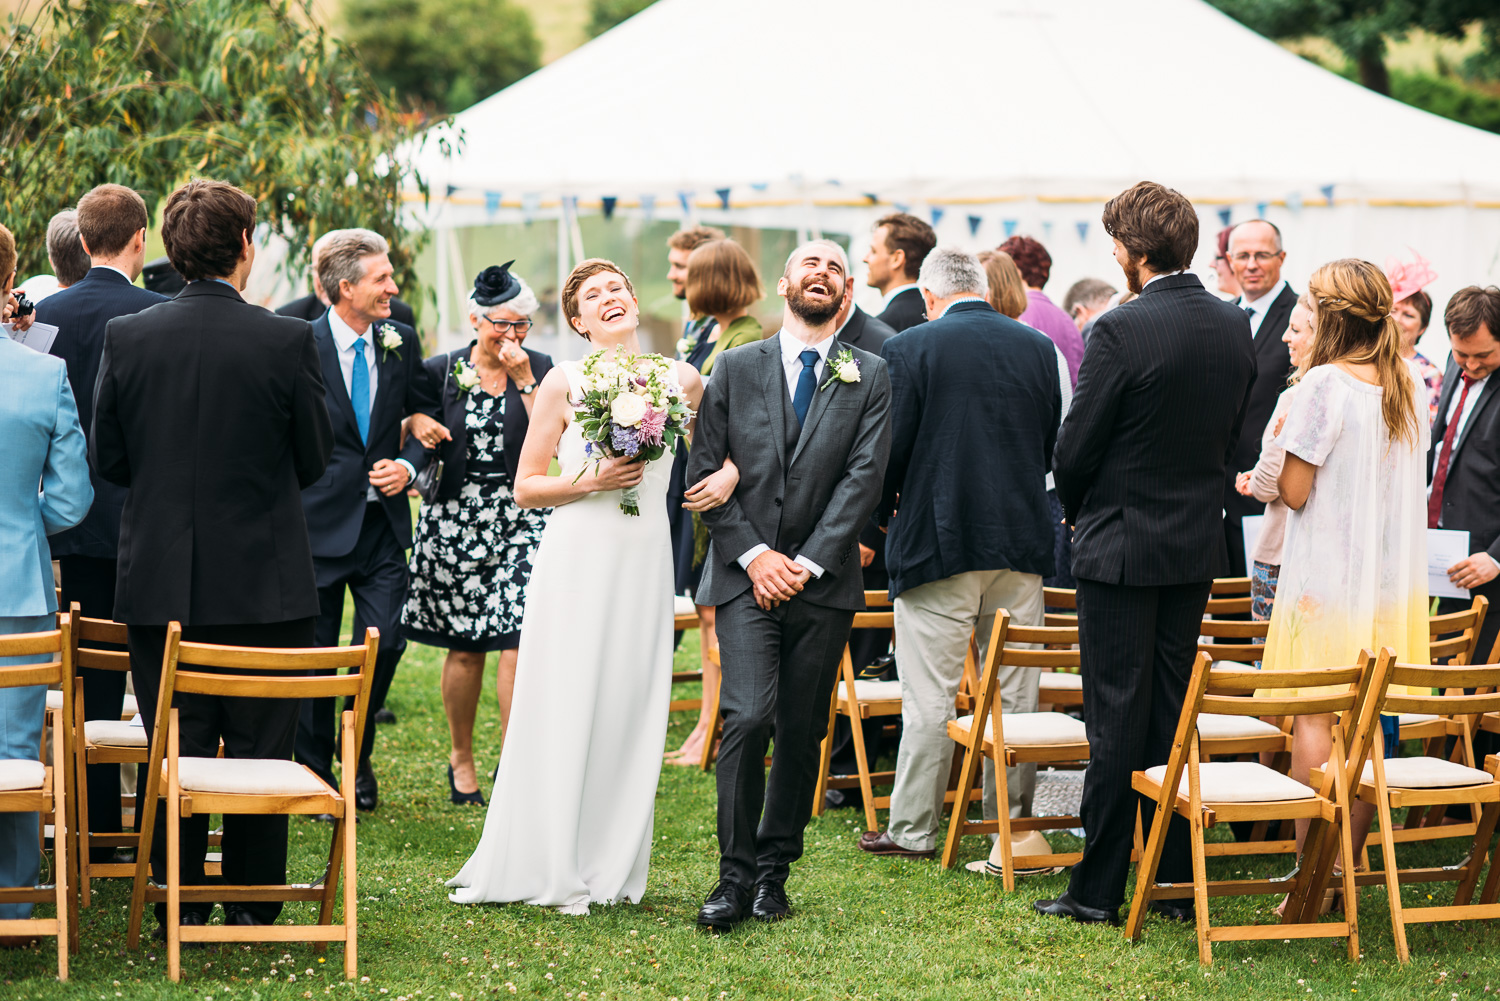 back-garden-wedding-43.jpg